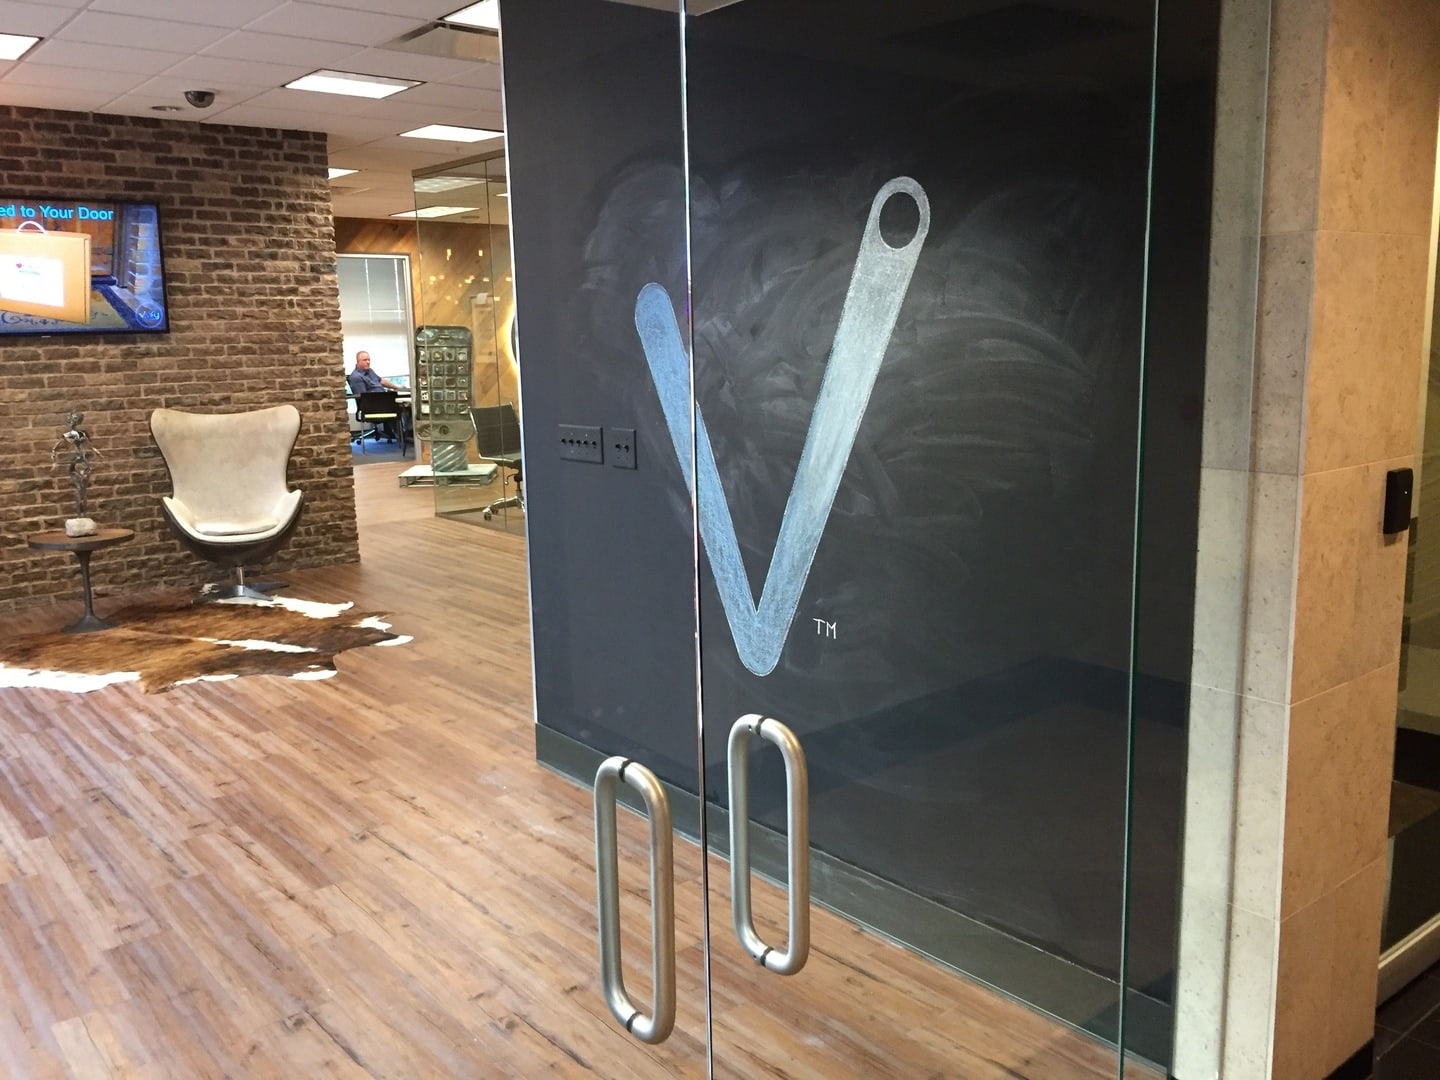 The V has landed…